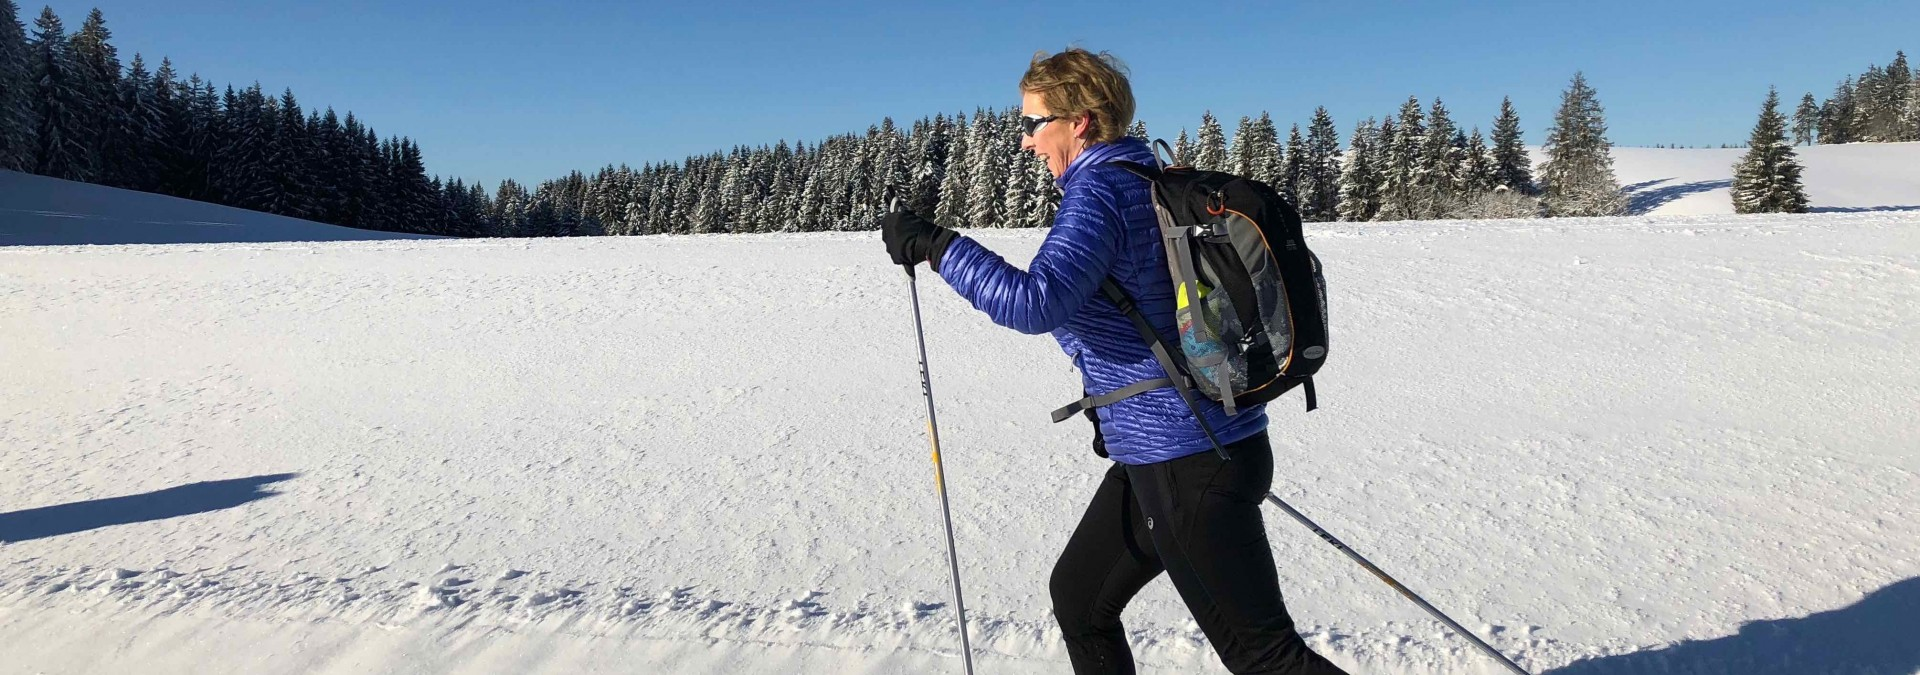 Traverse of the Black Forest